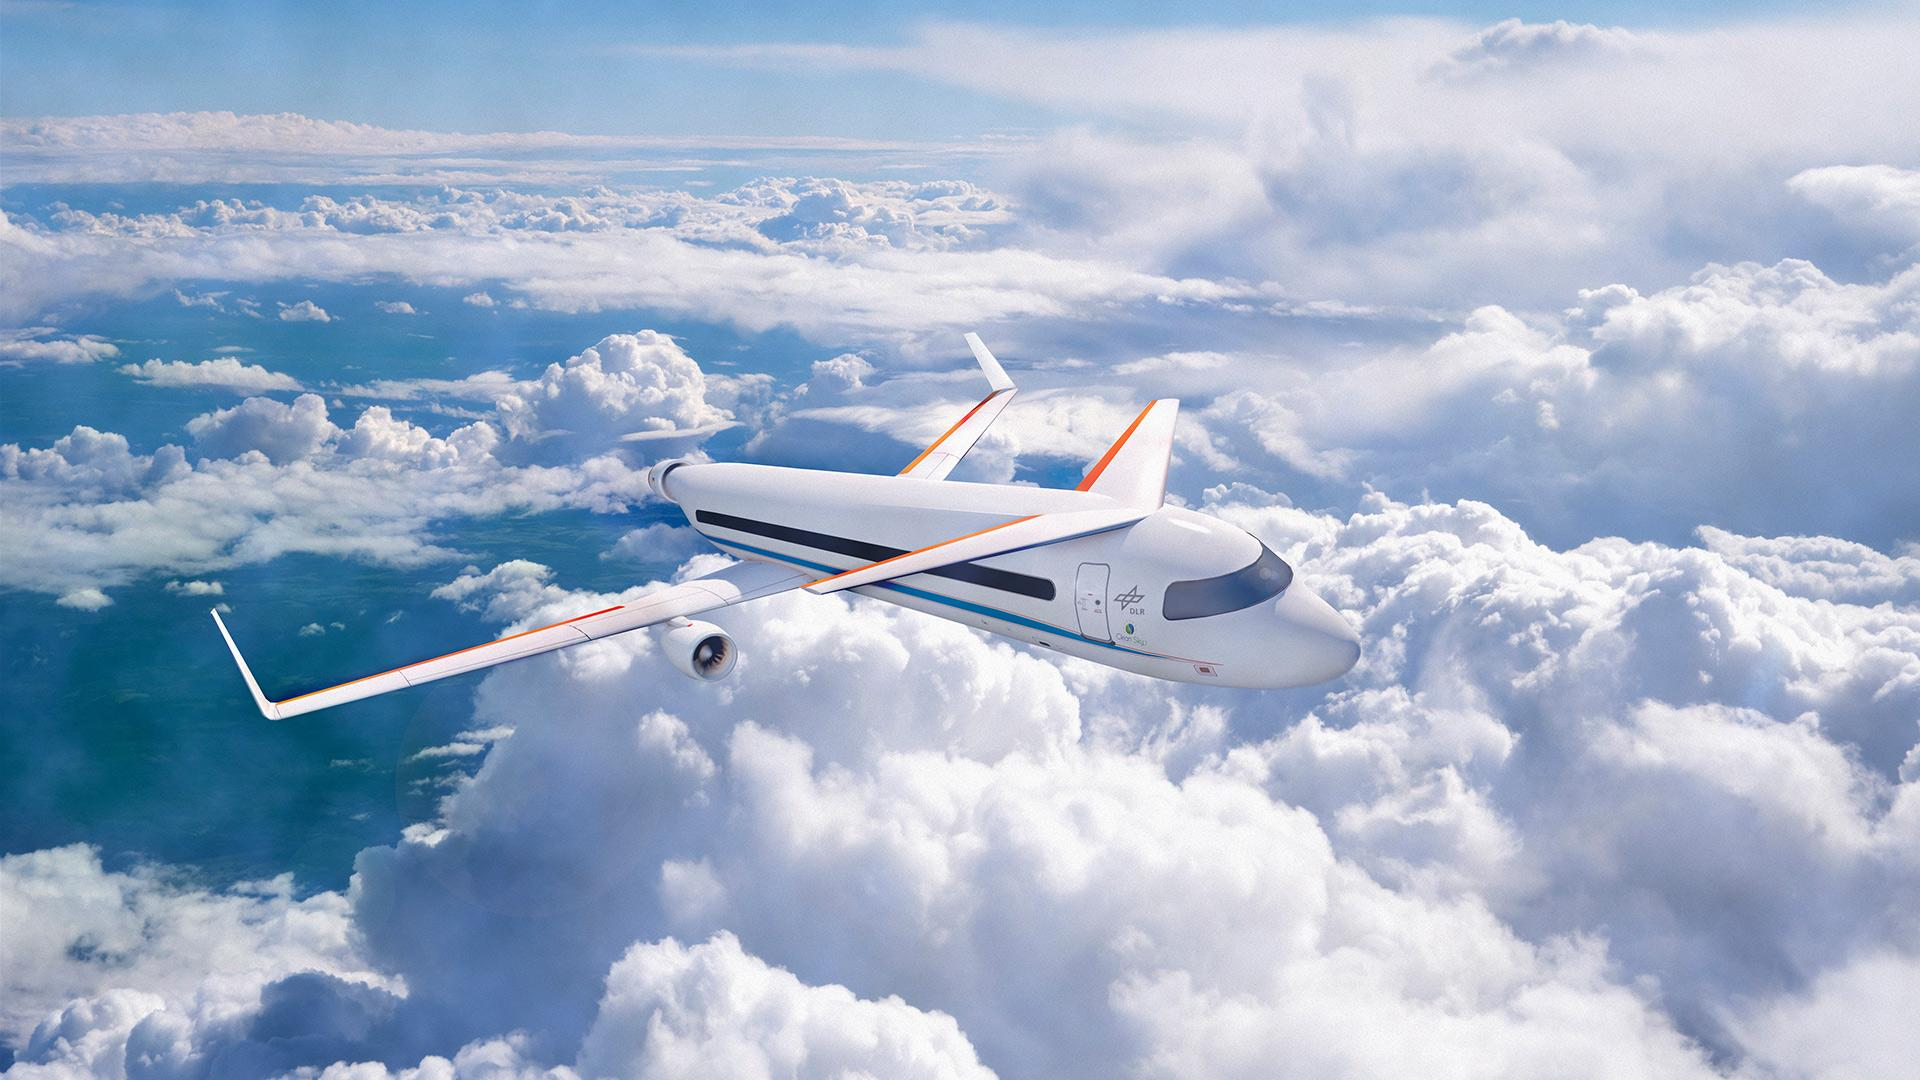 Electric propulsion systems enable innovative aircraft designs